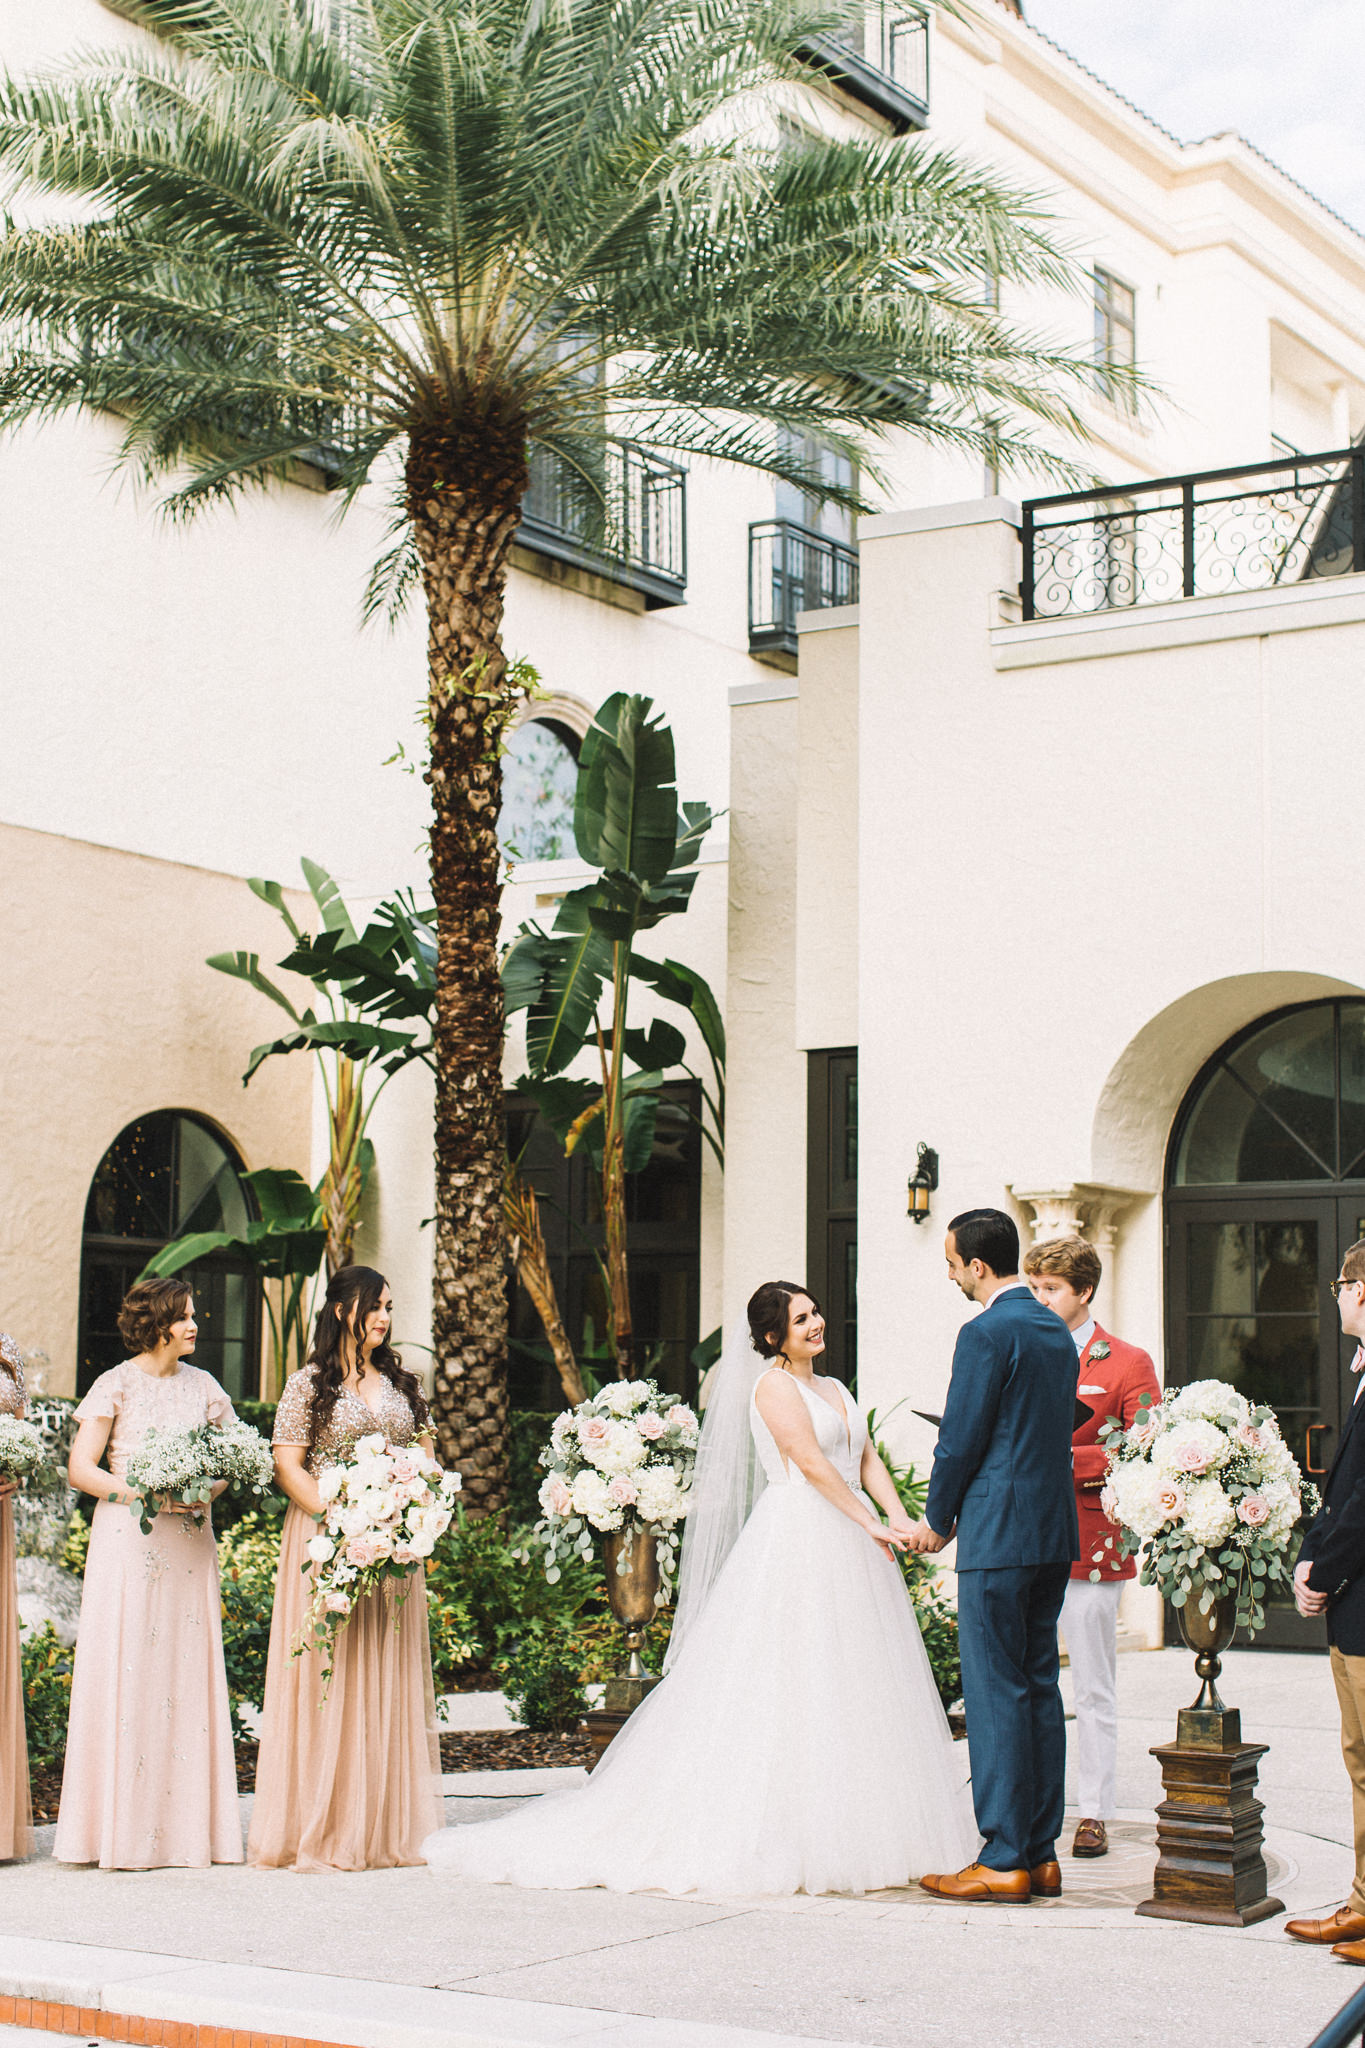 outdoors florida ceremony at a high end hotel with spacious ballroom for wedding reception